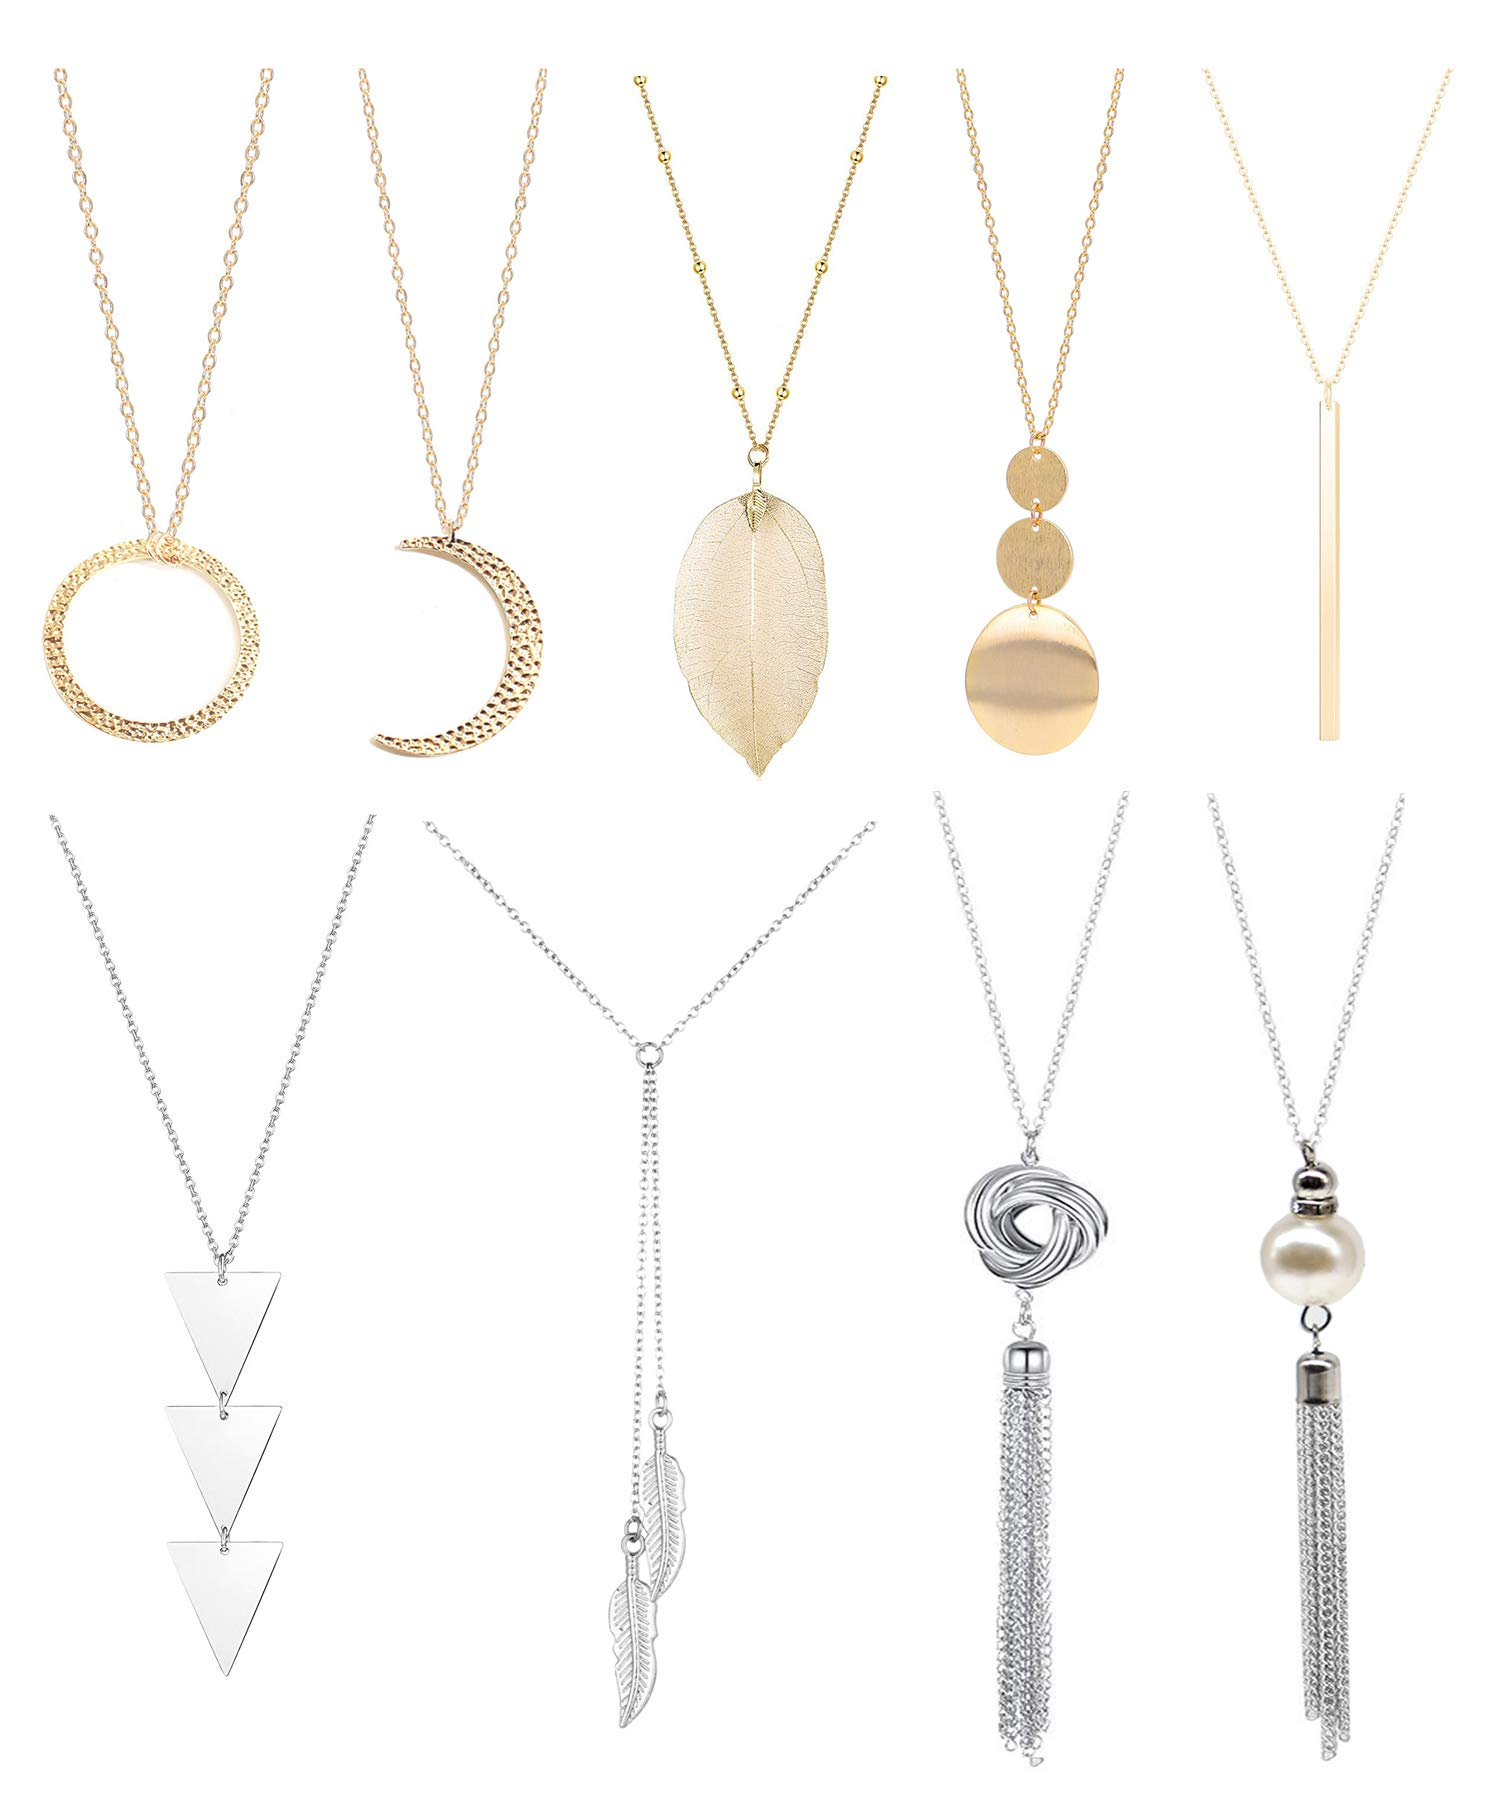 9 Pieces Long Pendant Necklace Simple Bar Layer Three Triangle Tassel Y Charm Sweater Necklace Chain for Women,Gold and Silver by Wremily